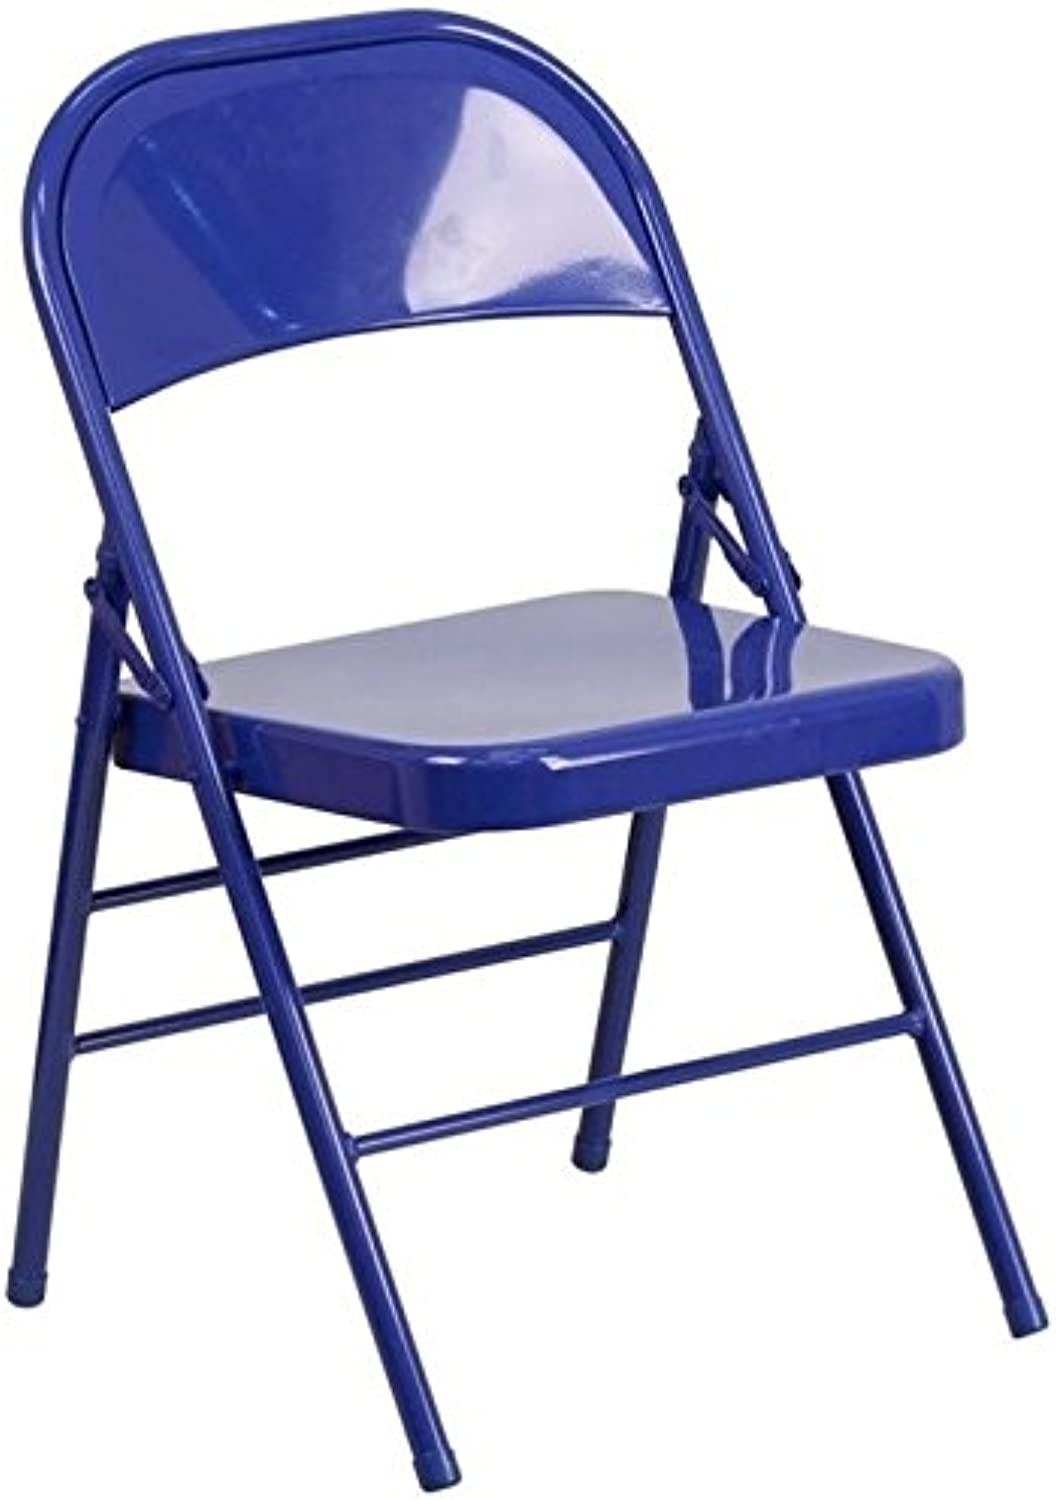 Bowery Hill Metal Folding Chair in bluee